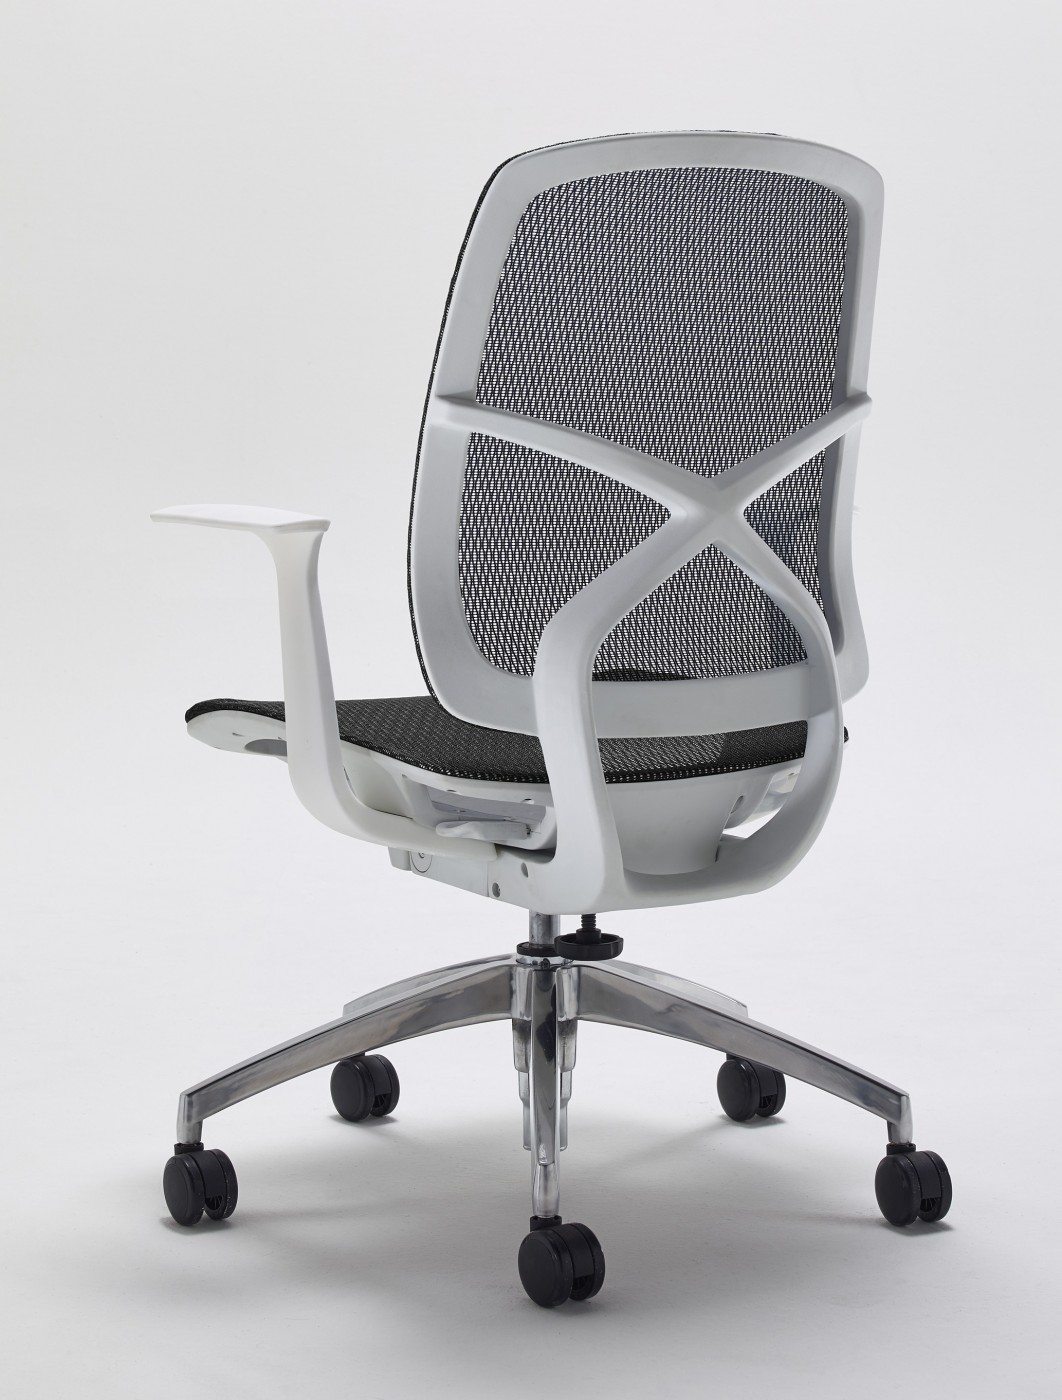 mesh humanscale crop height upload black file pinstripe next world width auto day chair productimages diffrient dest office delivery